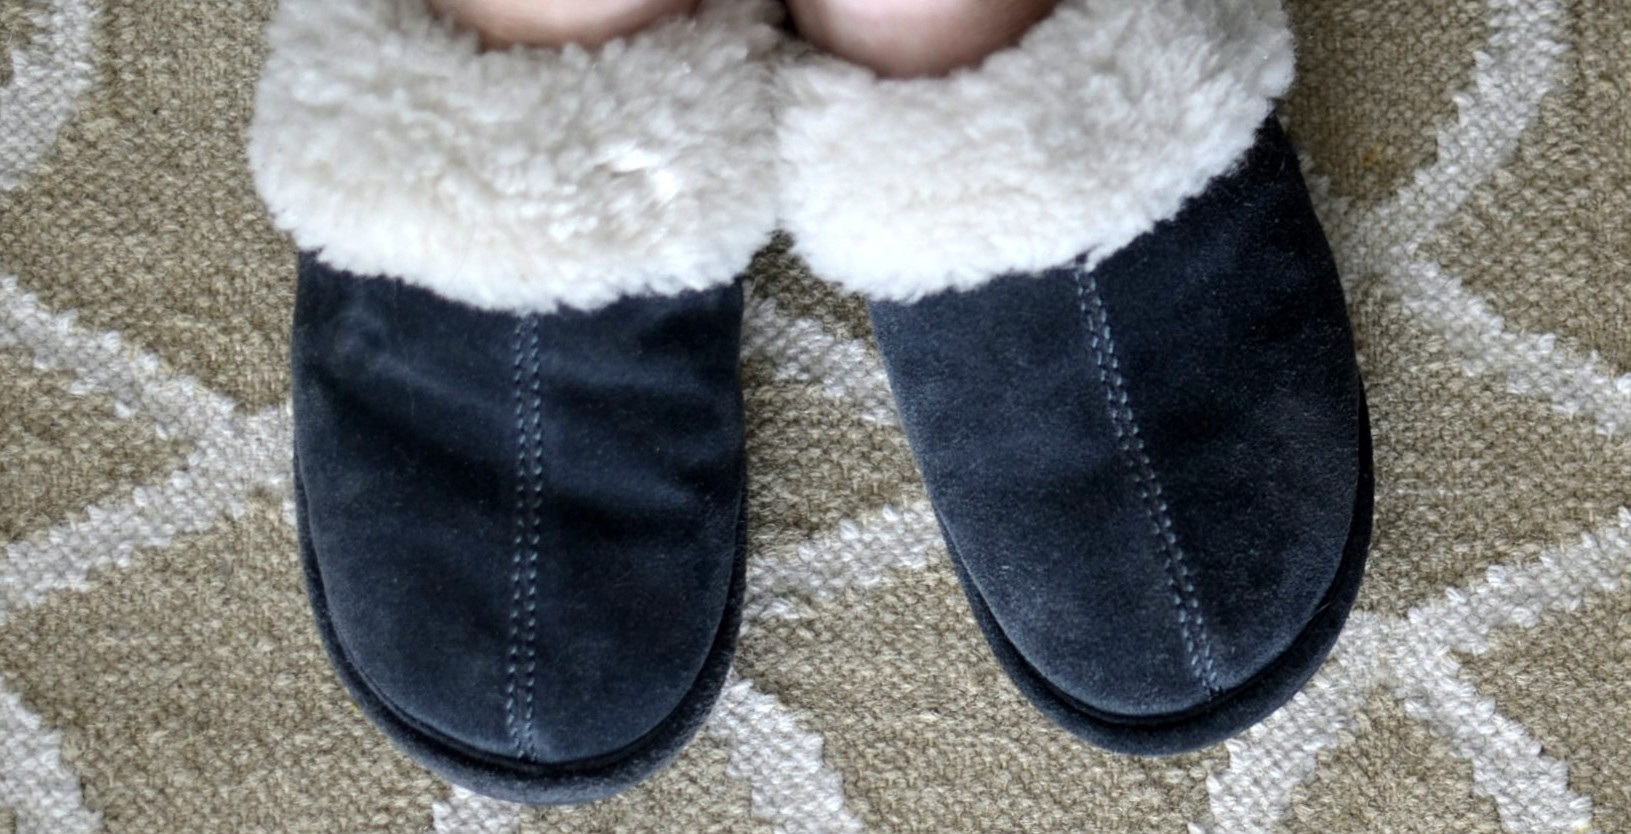 10 Favorite Winter Products {aka A Canadian Girl's Guide to Winter}